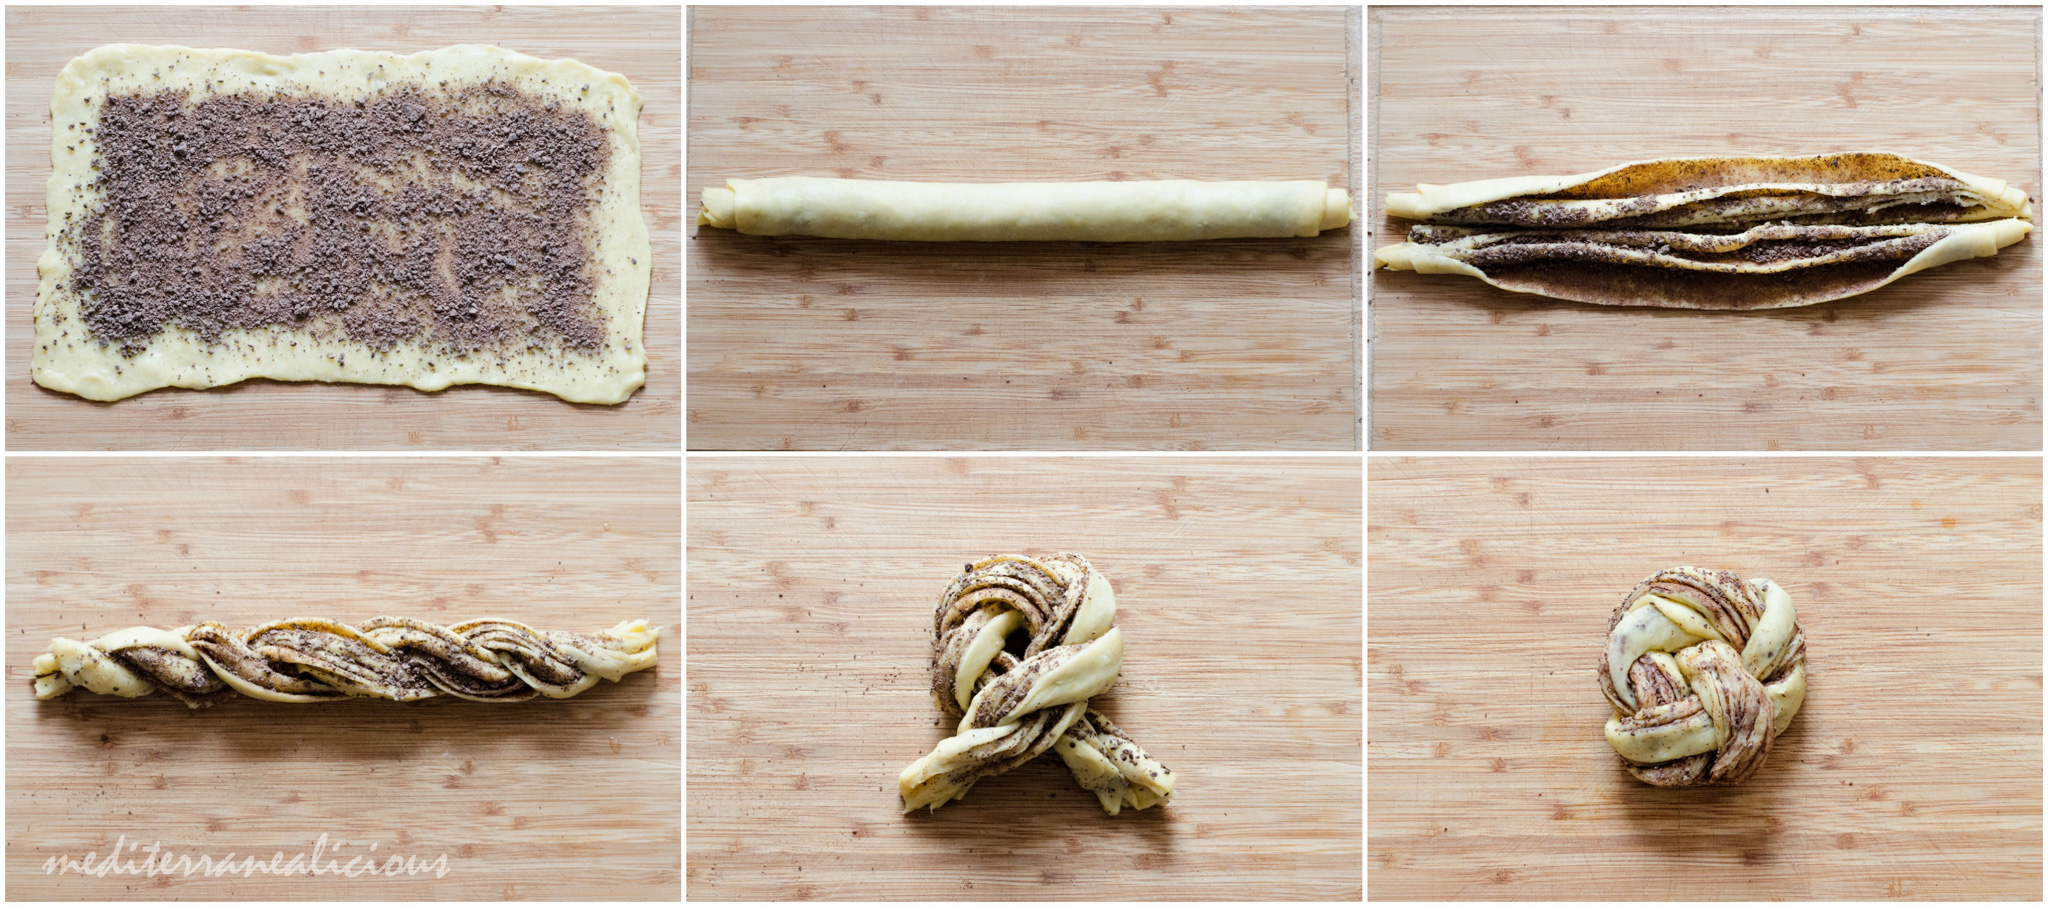 Braided Chocolate Brioche step-by-step